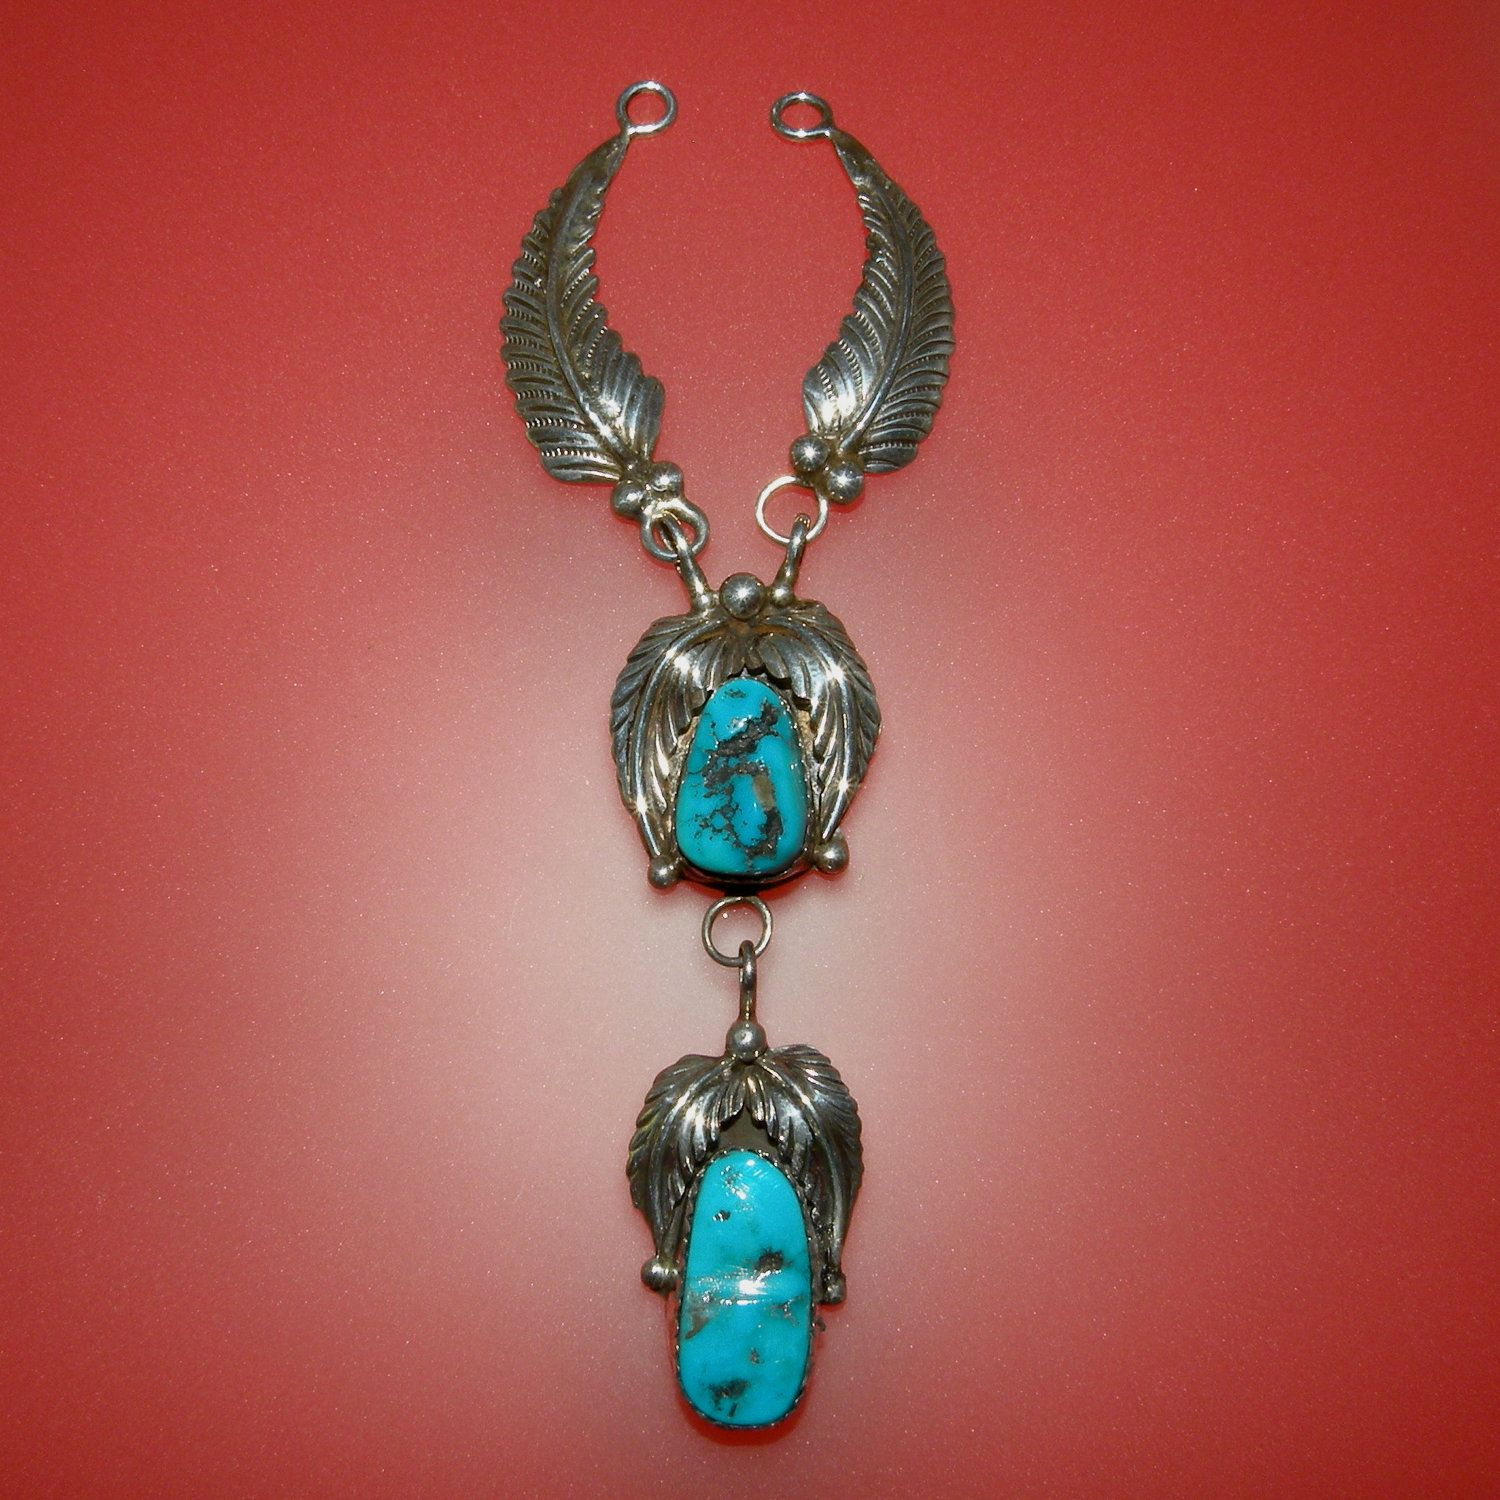 Vintage Kingman Turquoise in Silver Hand Crafted Indian Jewelry Pendant, free U.S. shipping. $58.00, via Etsy.